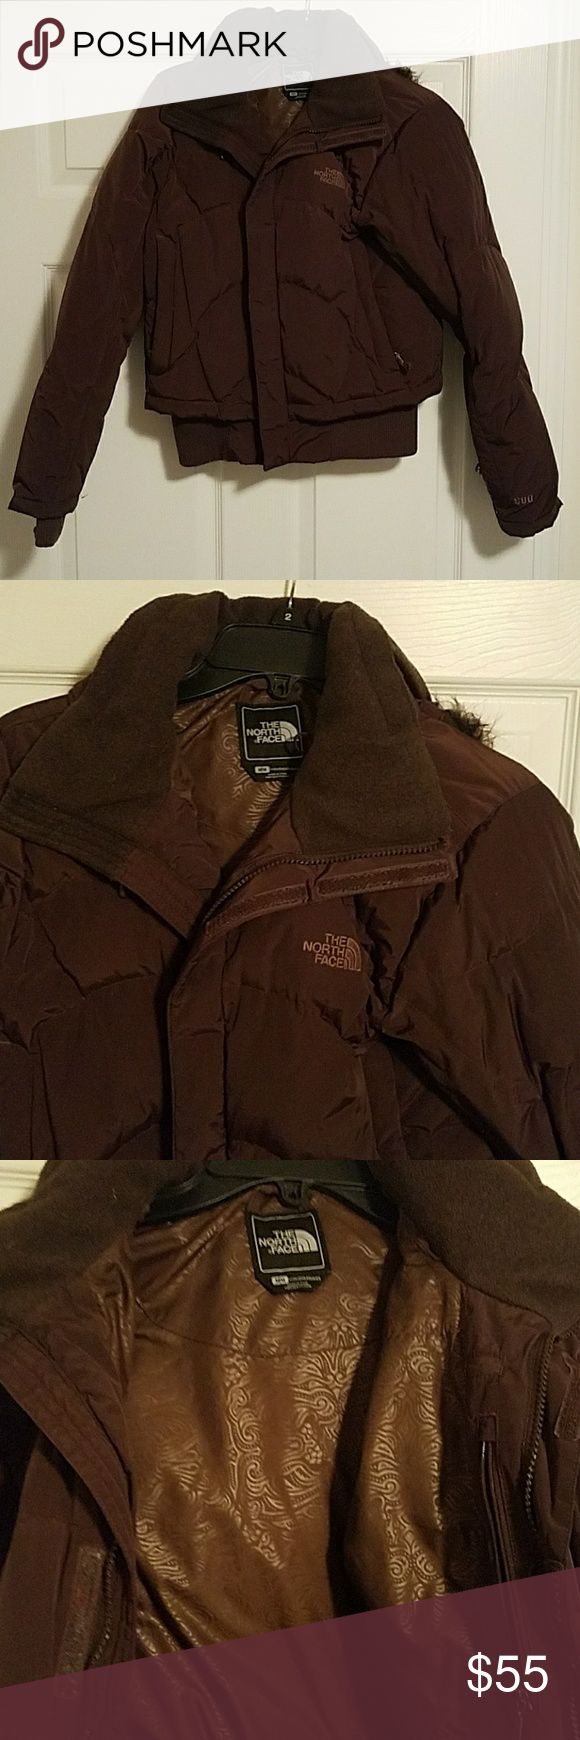 Northface winter coat Dark brown North Face coat. Super warm!!!! Still in great condition. North Face Jackets & Coats Puffers